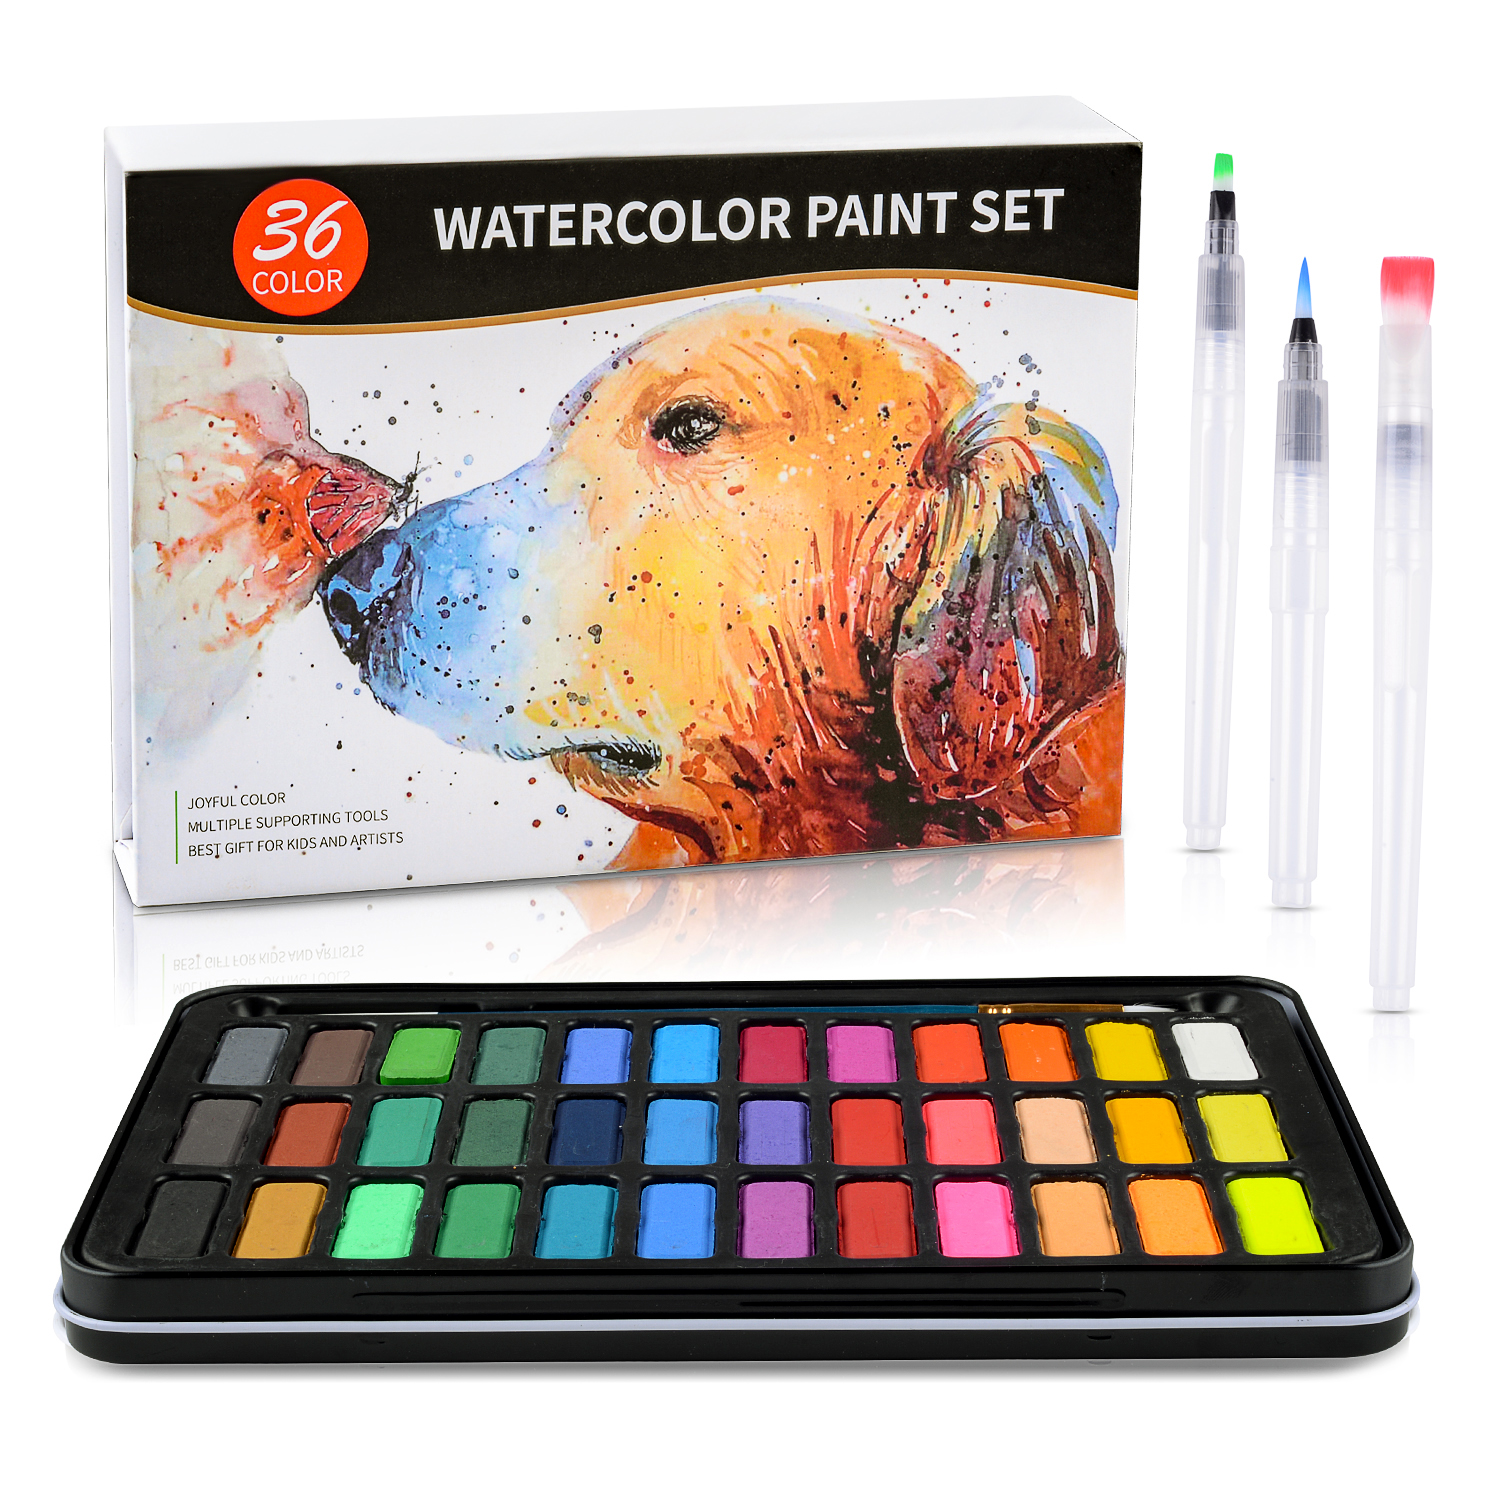 36Color Solid Watercolor Paint Set With Water Brush Pen Water Color Pigment Gift Box Set for Artist Drawing Art Supplies in Water Color from Office School Supplies